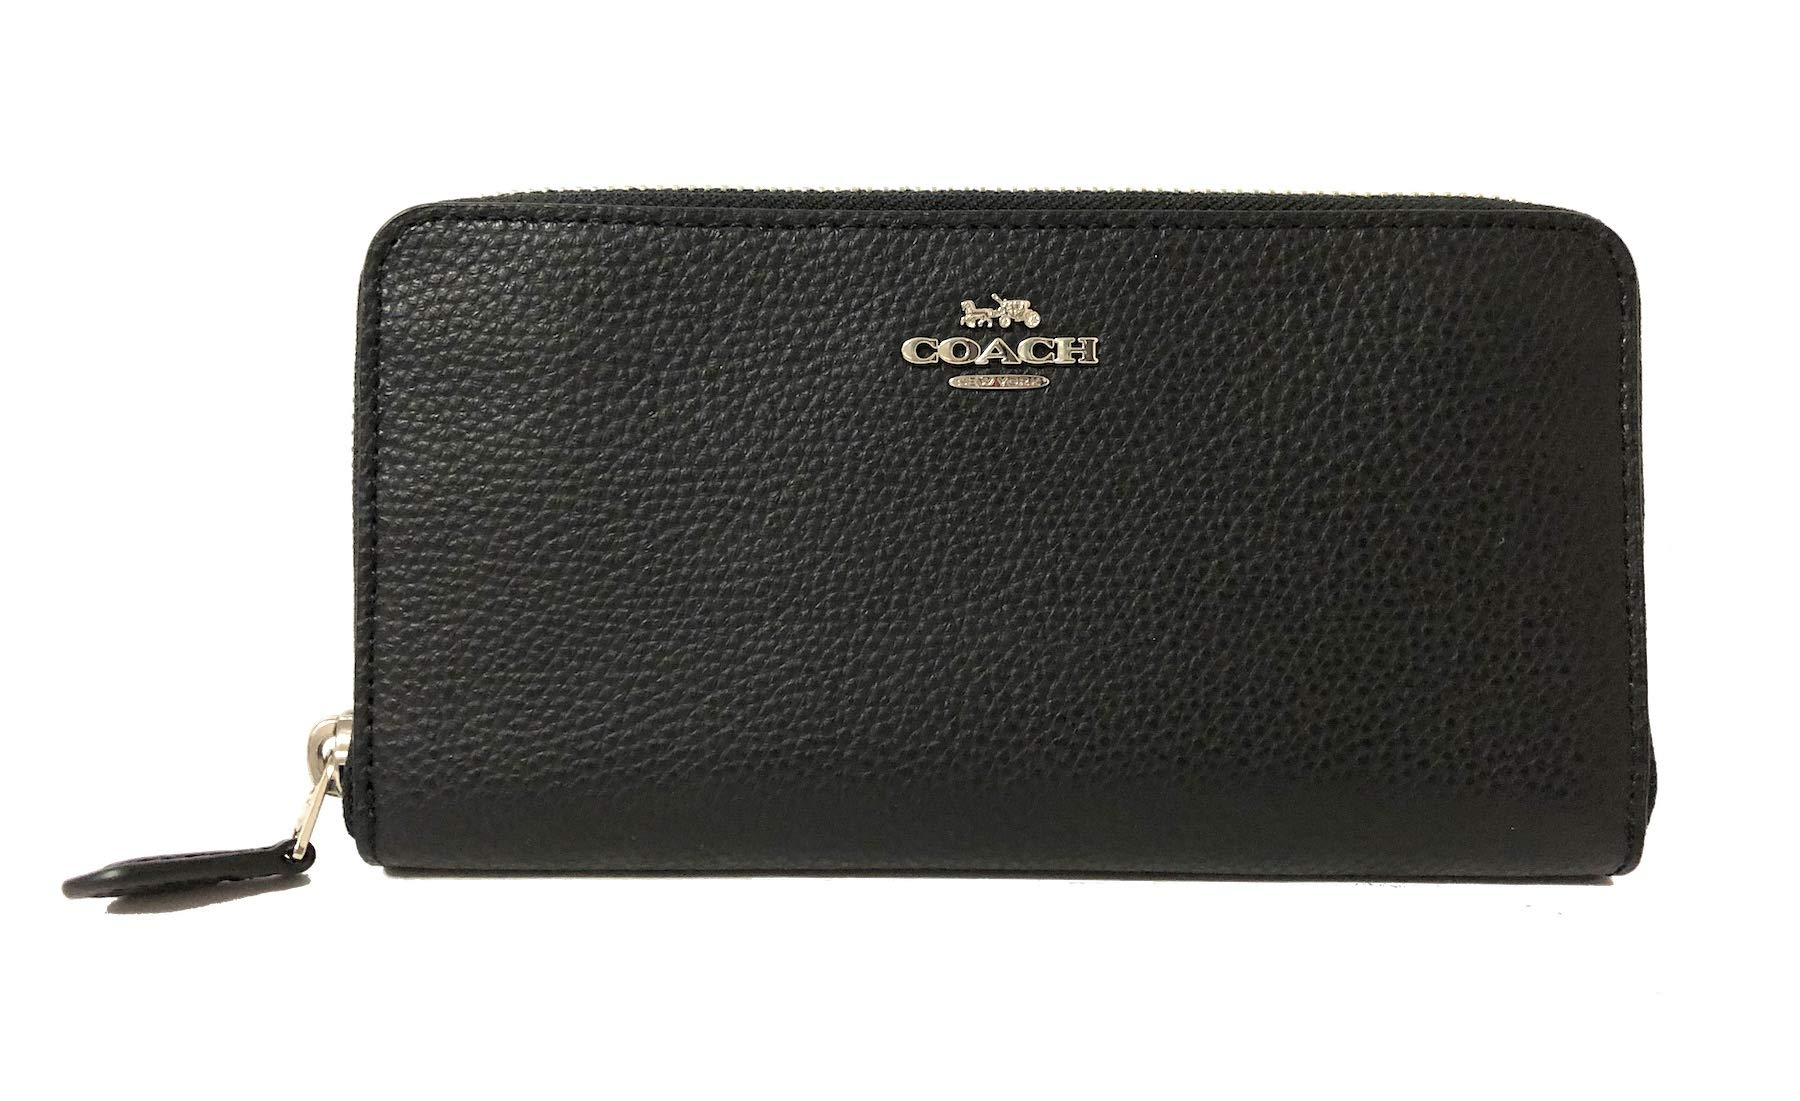 Coach Pebble Leather Accordion Zip Around Wallet (SV/Black), Large by Coach